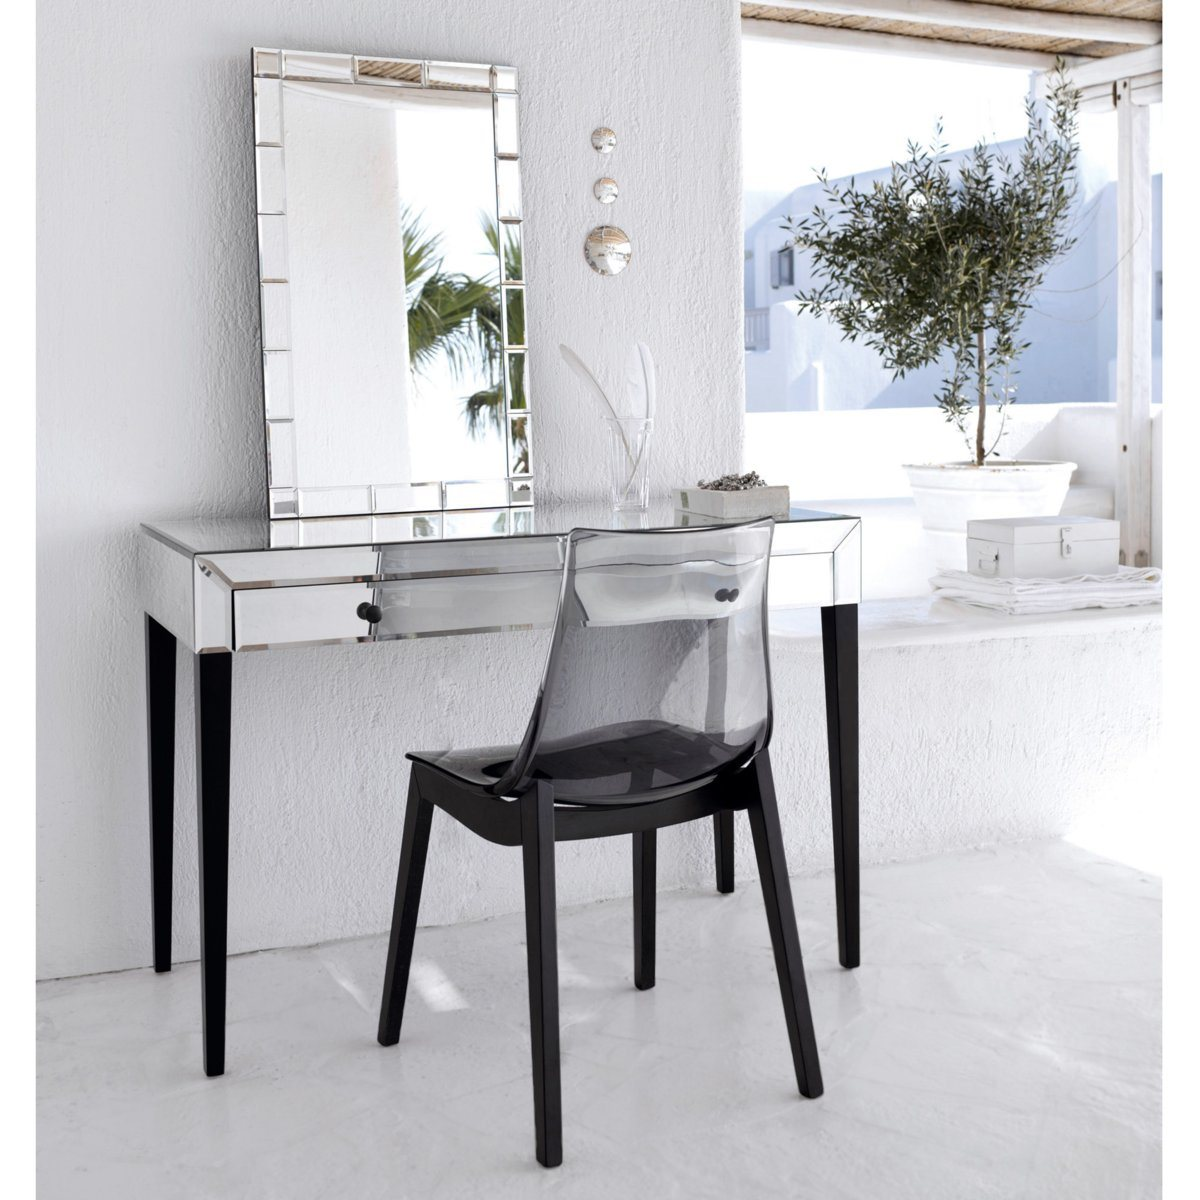 console miroir clim ne am pm console am pm ventes pas. Black Bedroom Furniture Sets. Home Design Ideas